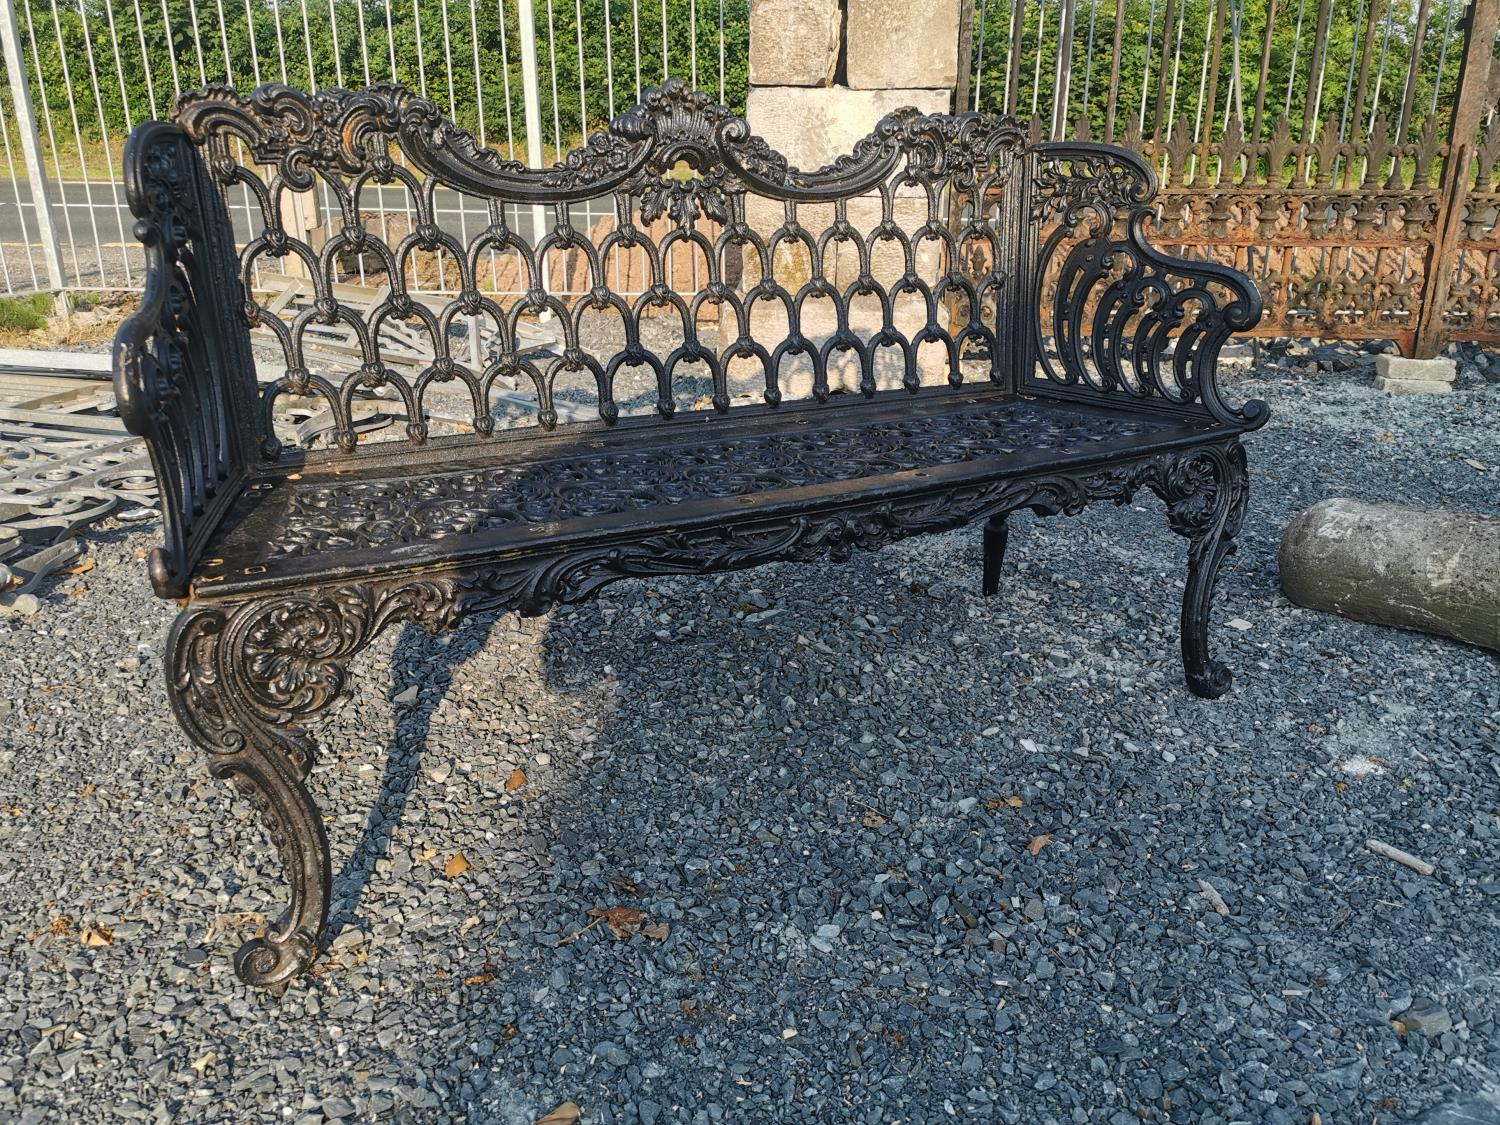 Decorative cast iron garden bench in the Rococo style